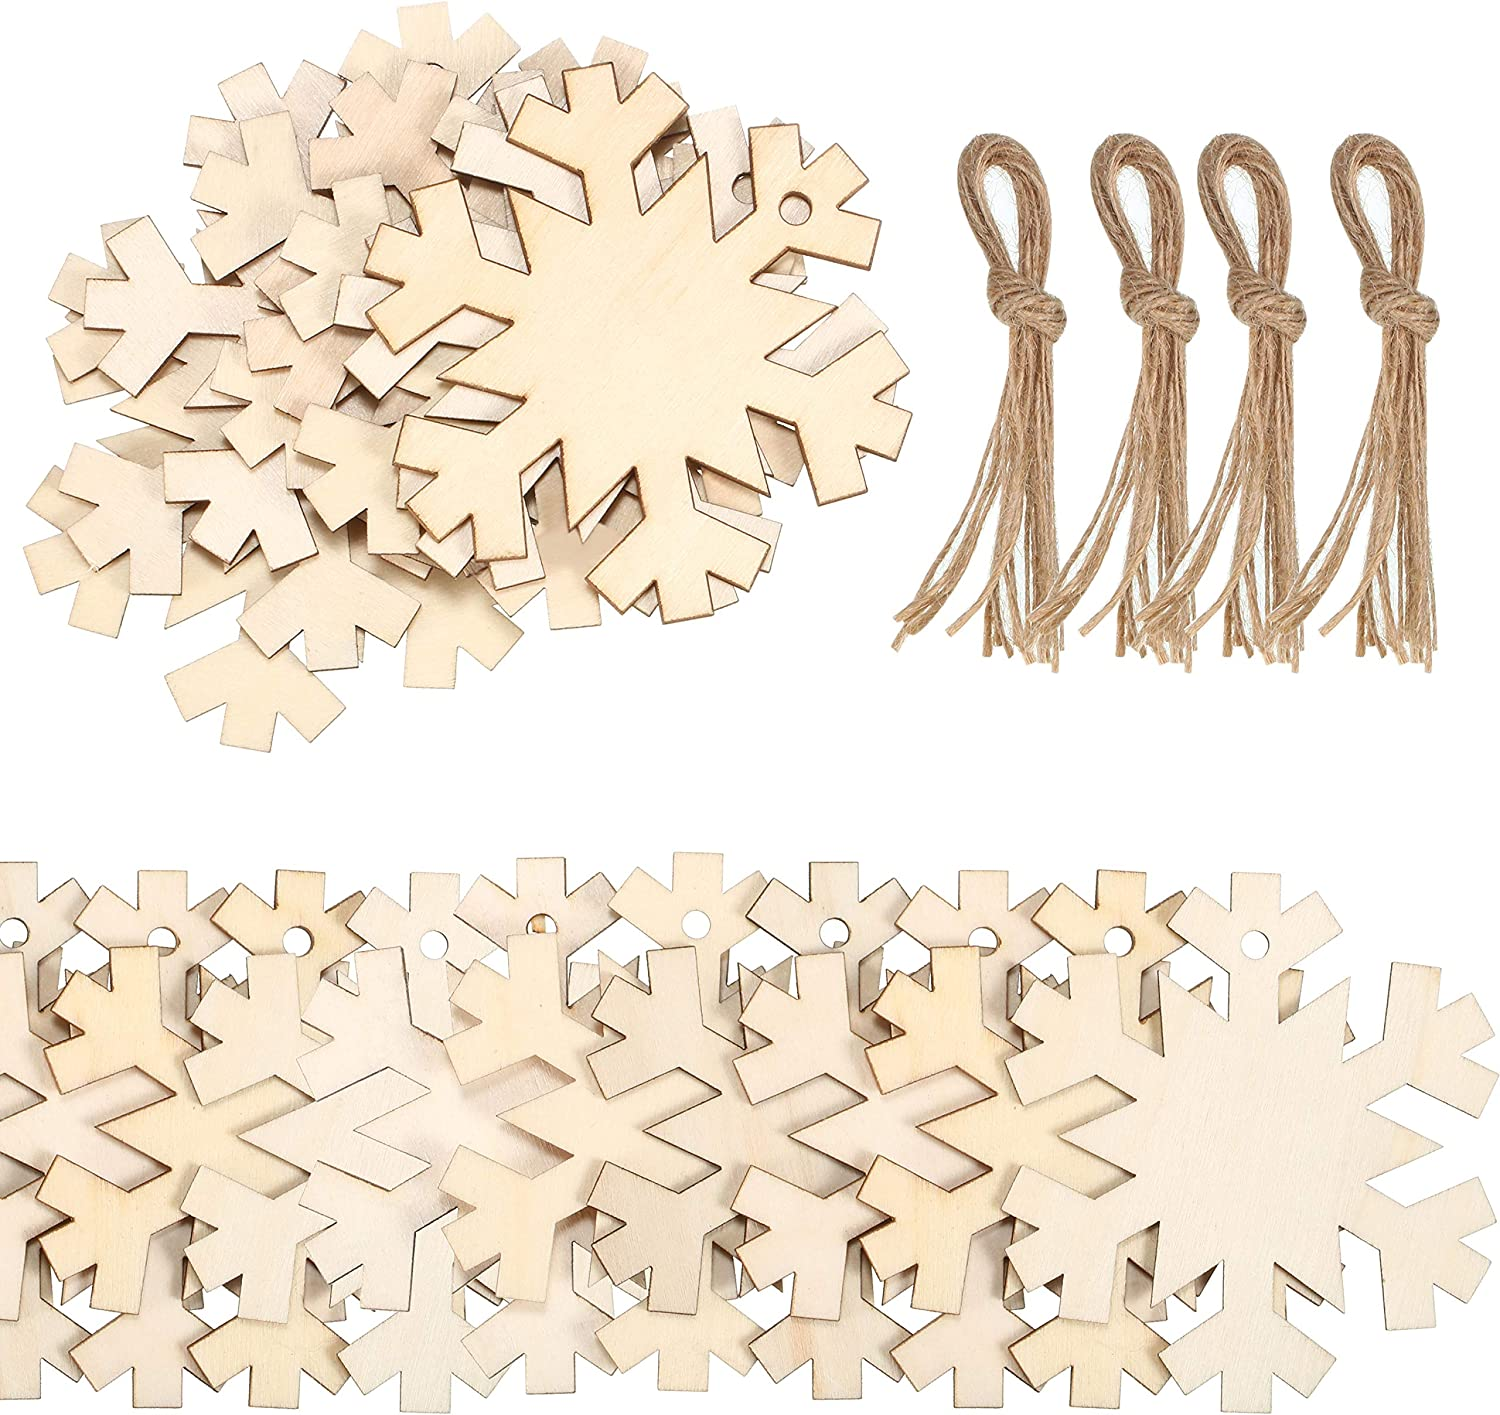 120 Pieces Unfinished Wooden Ornaments Christmas Wood Ornaments Hanging Embellishments Crafts for DIY Christmas Hanging Decoration (Snowflake Shape)